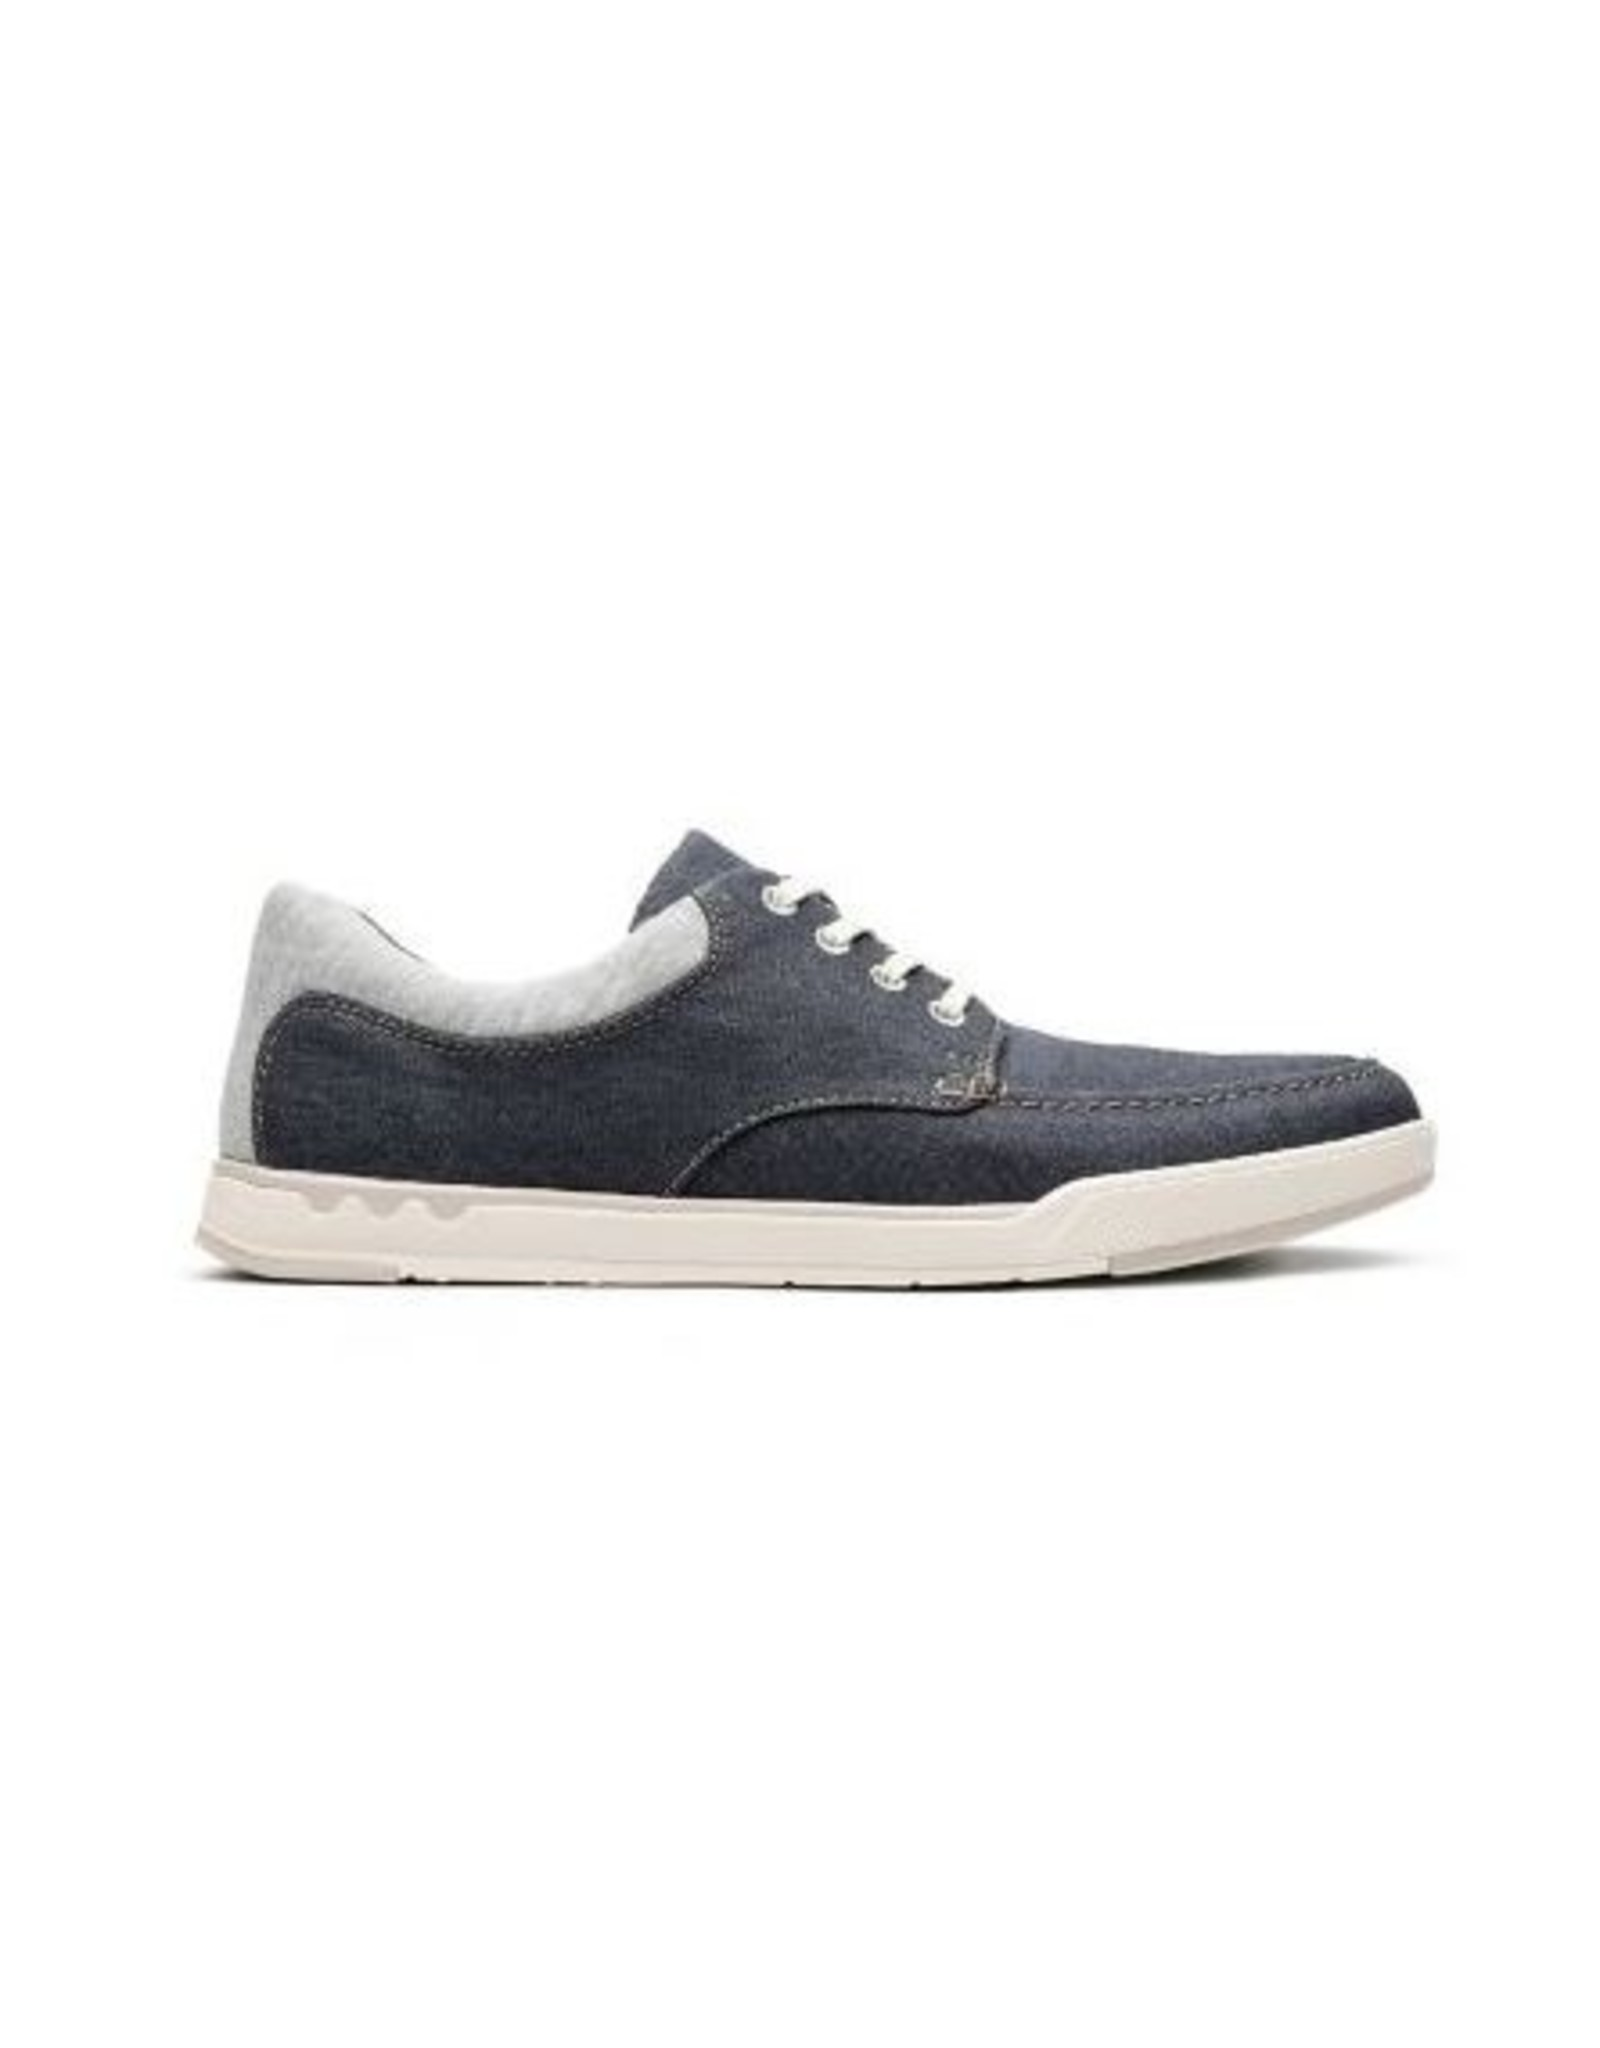 Clarks Men's Step Isle Lace Up